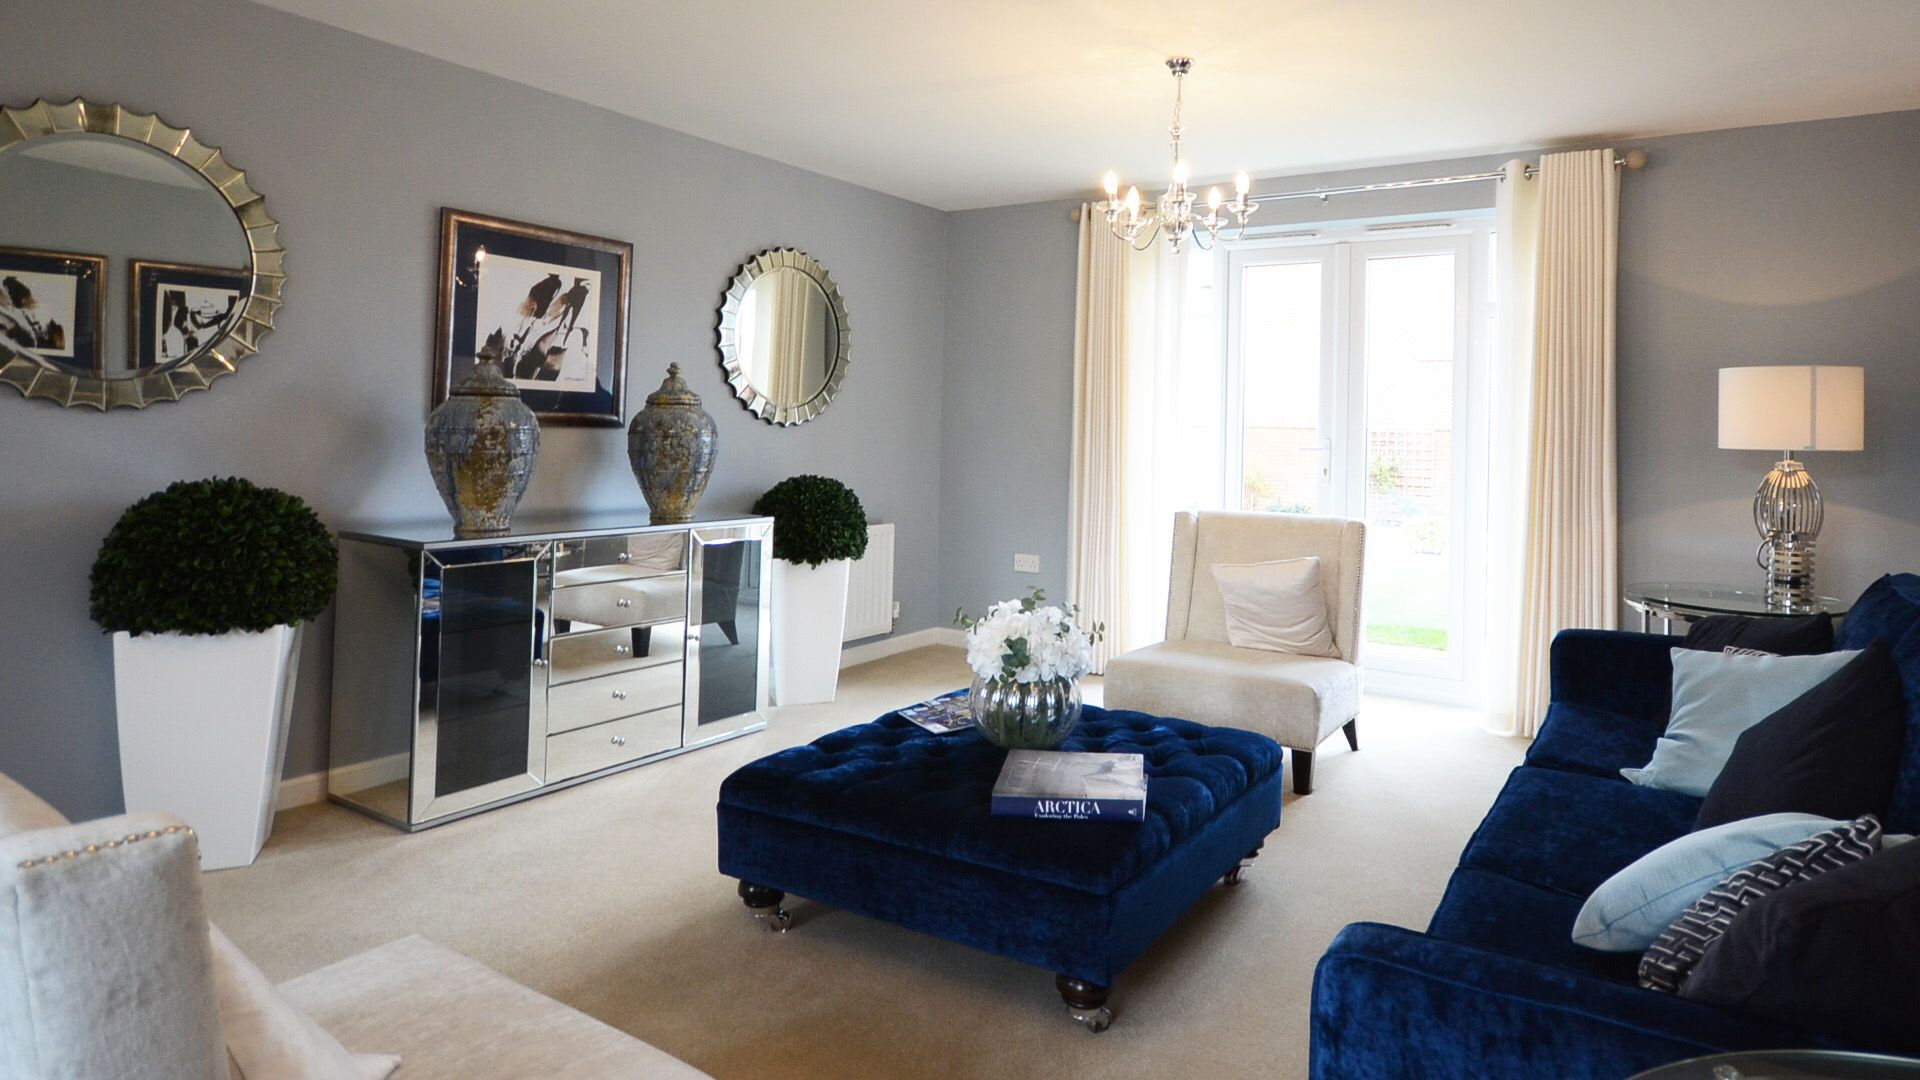 arranging furniture in small living room with french doors wall panel design layout lettings agent windsor